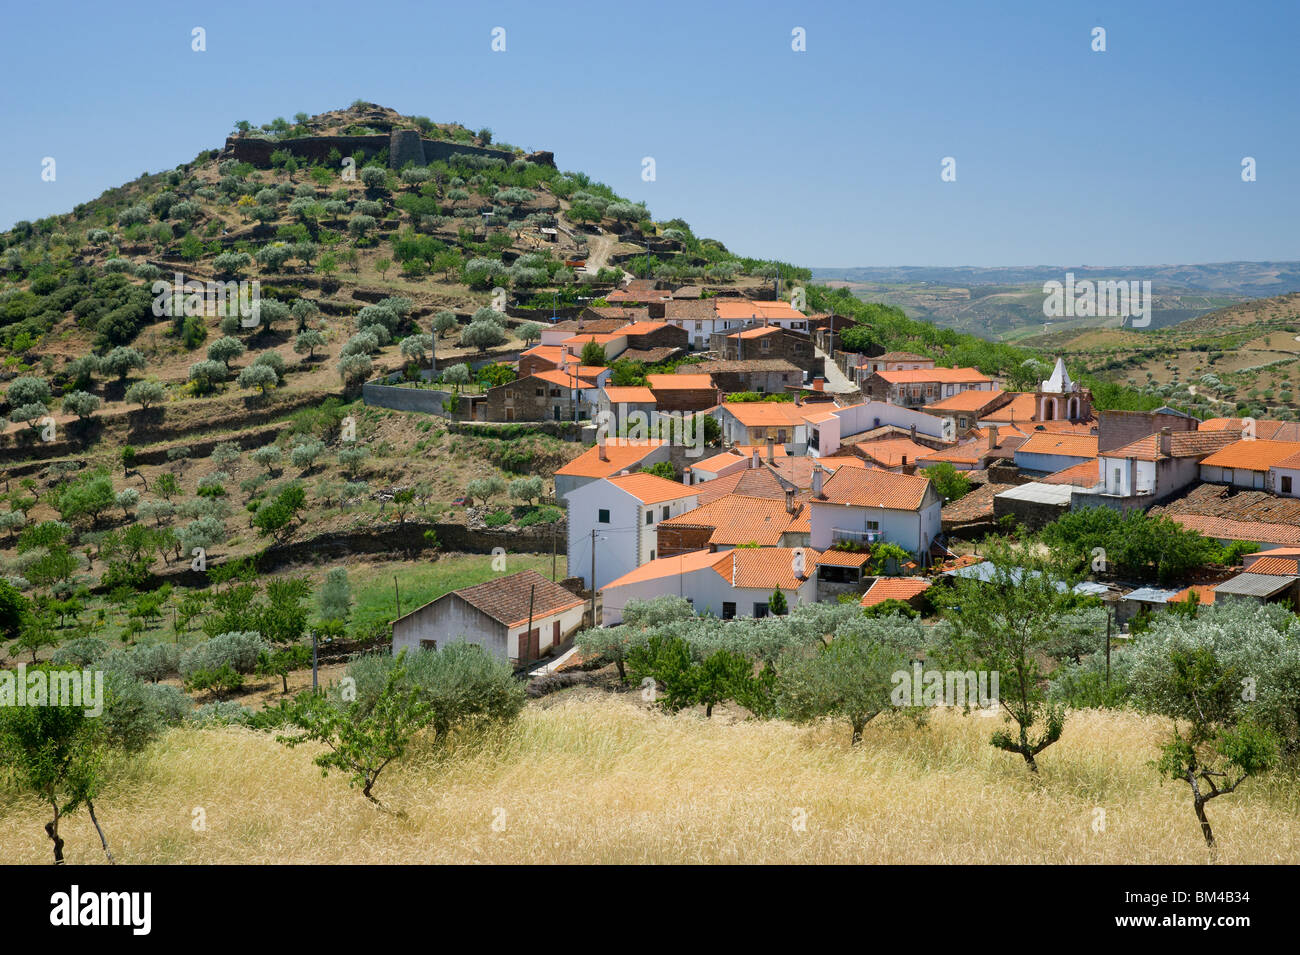 Portugal, The Beira Alta District Of Central Portugal, Castelo Melhor  Village and Ruined Castle - Stock Image